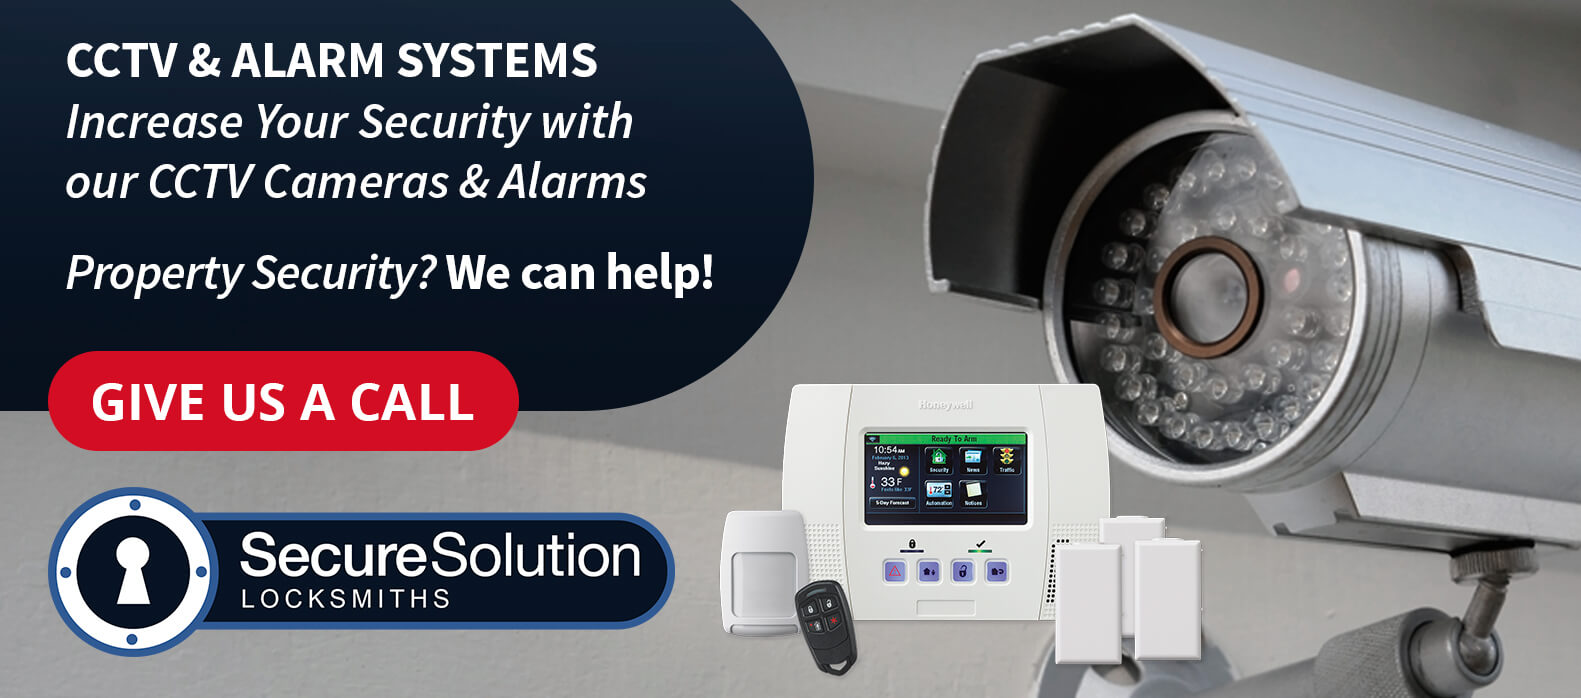 CCTV Cameras & Alarm Systems Fitted in Leeds by Secure Solution Locksmiths